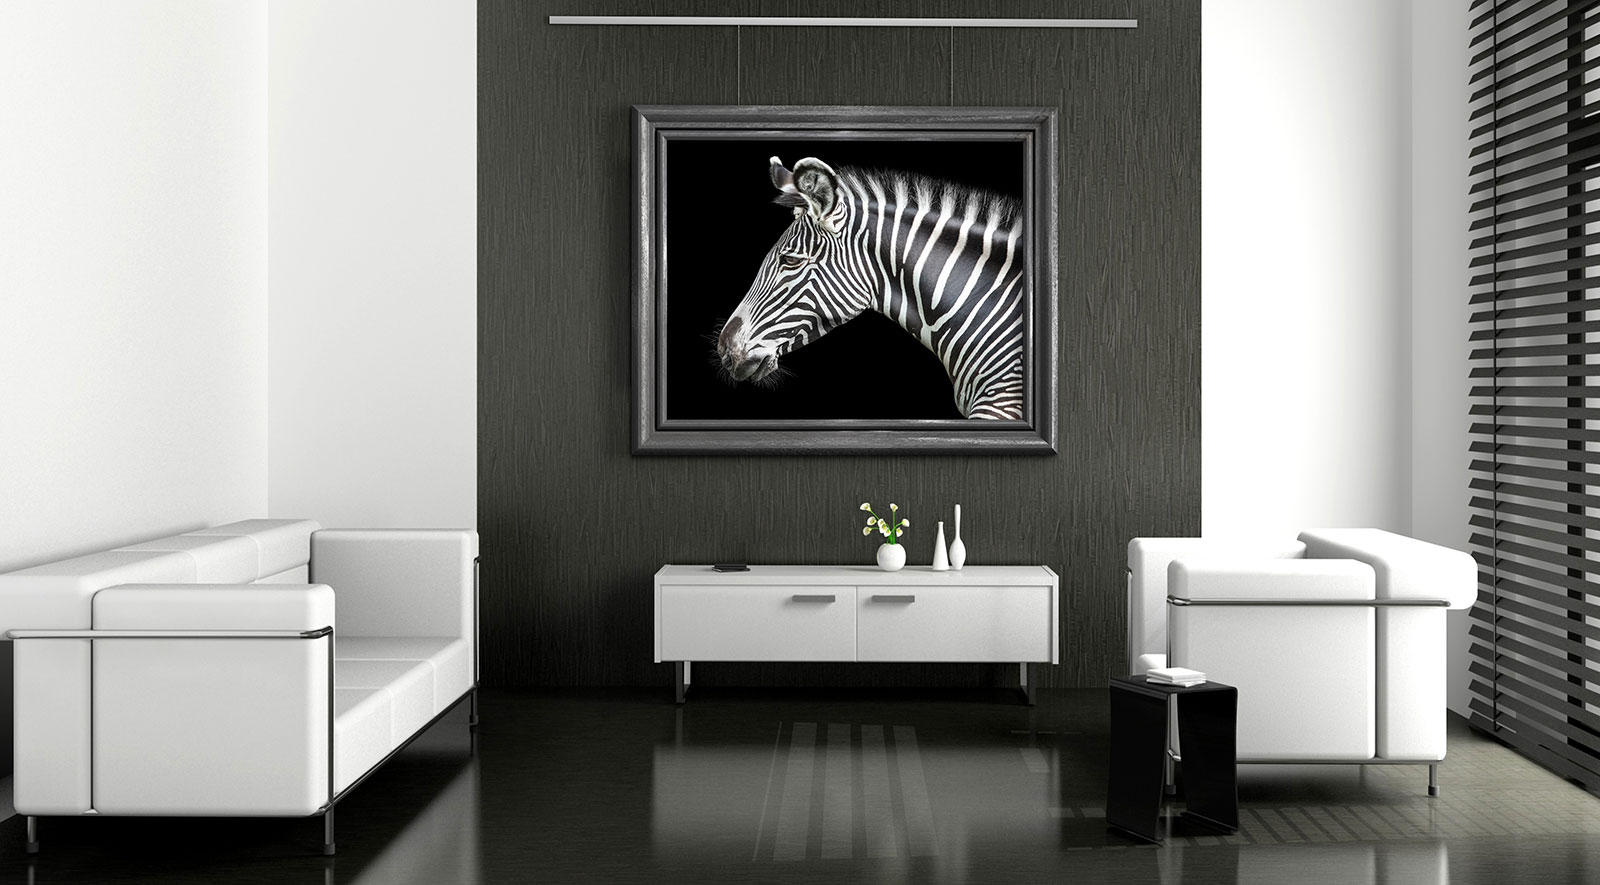 galerieschienen set premium 2 m in silber bilderschiene. Black Bedroom Furniture Sets. Home Design Ideas